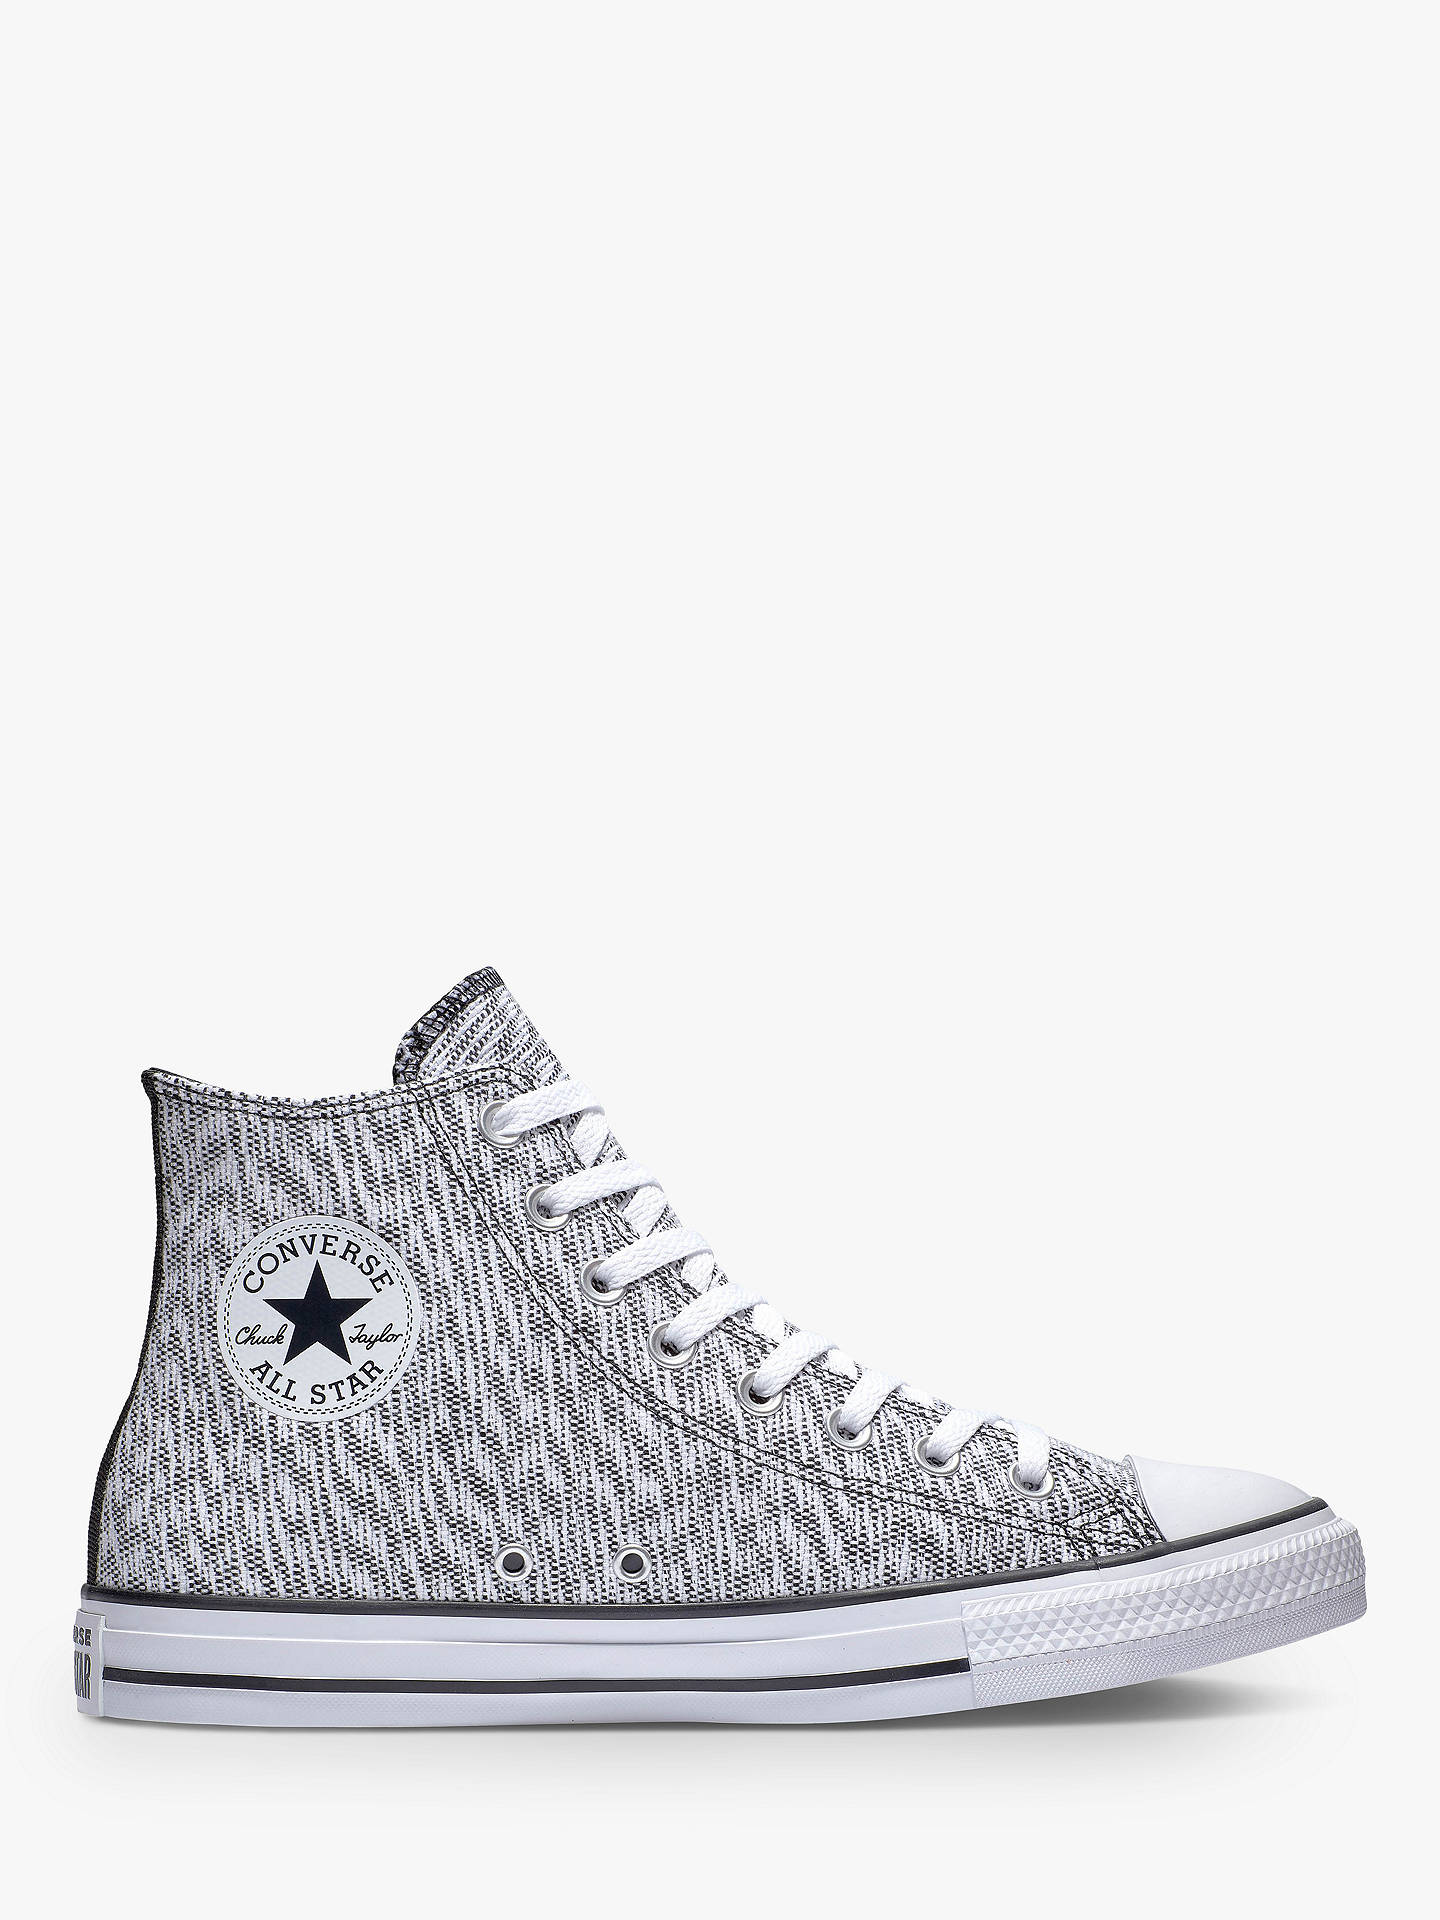 Converse Chuck Taylor All Star High Top Trainers, BlackWhite